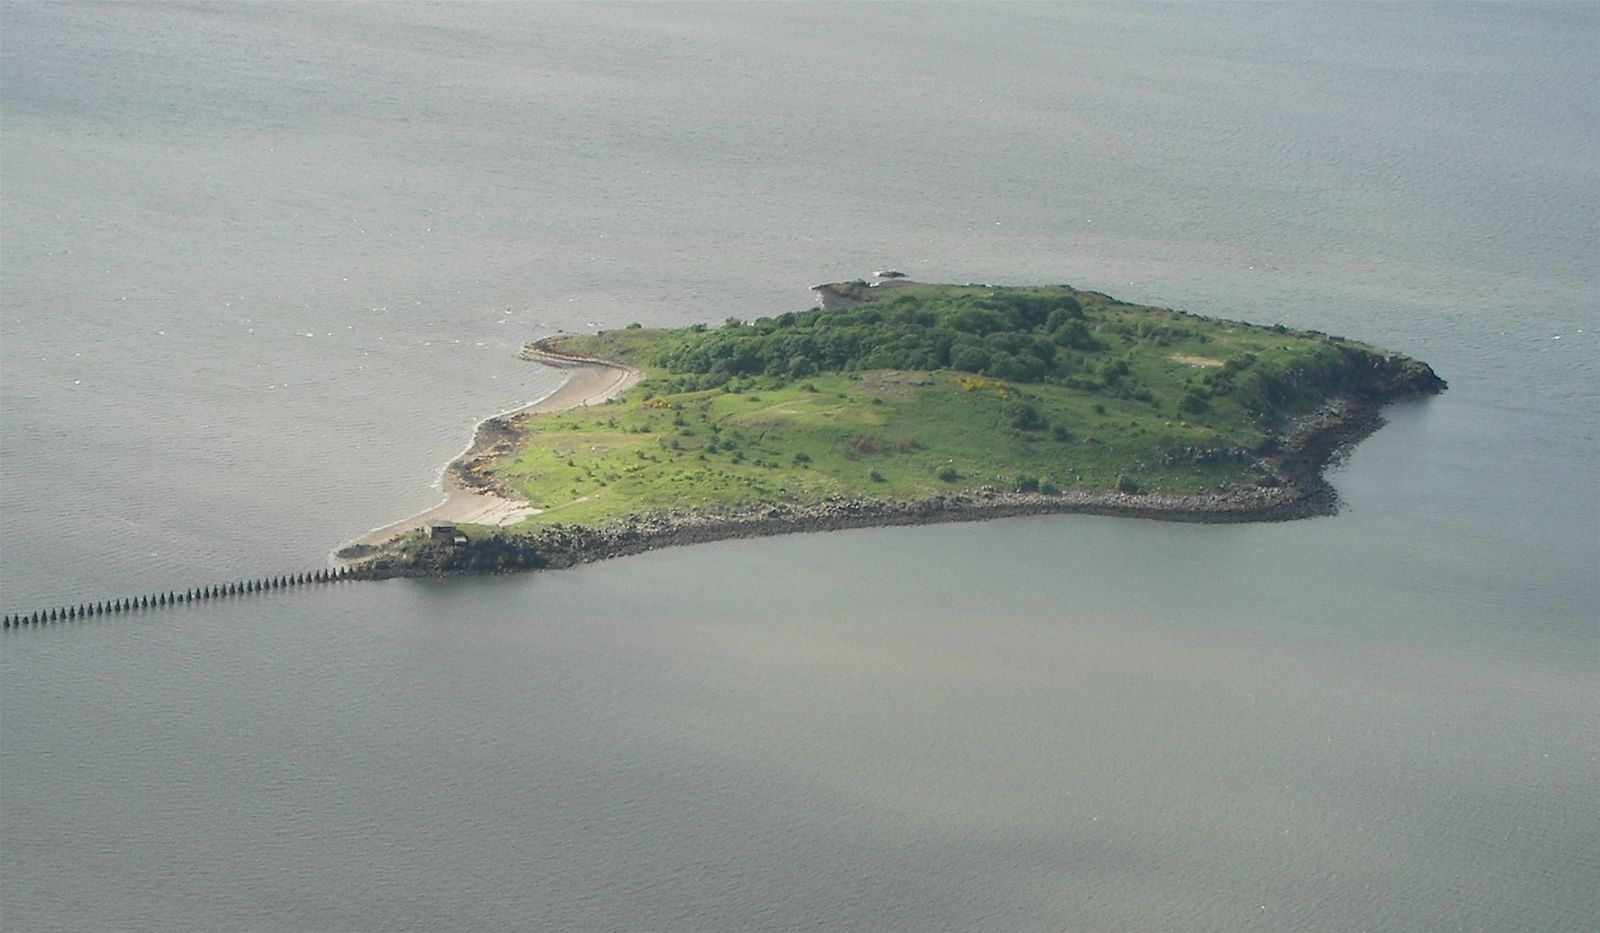 Description: https://media.foody.vn/images/Cramond_Island_from_air.JPG